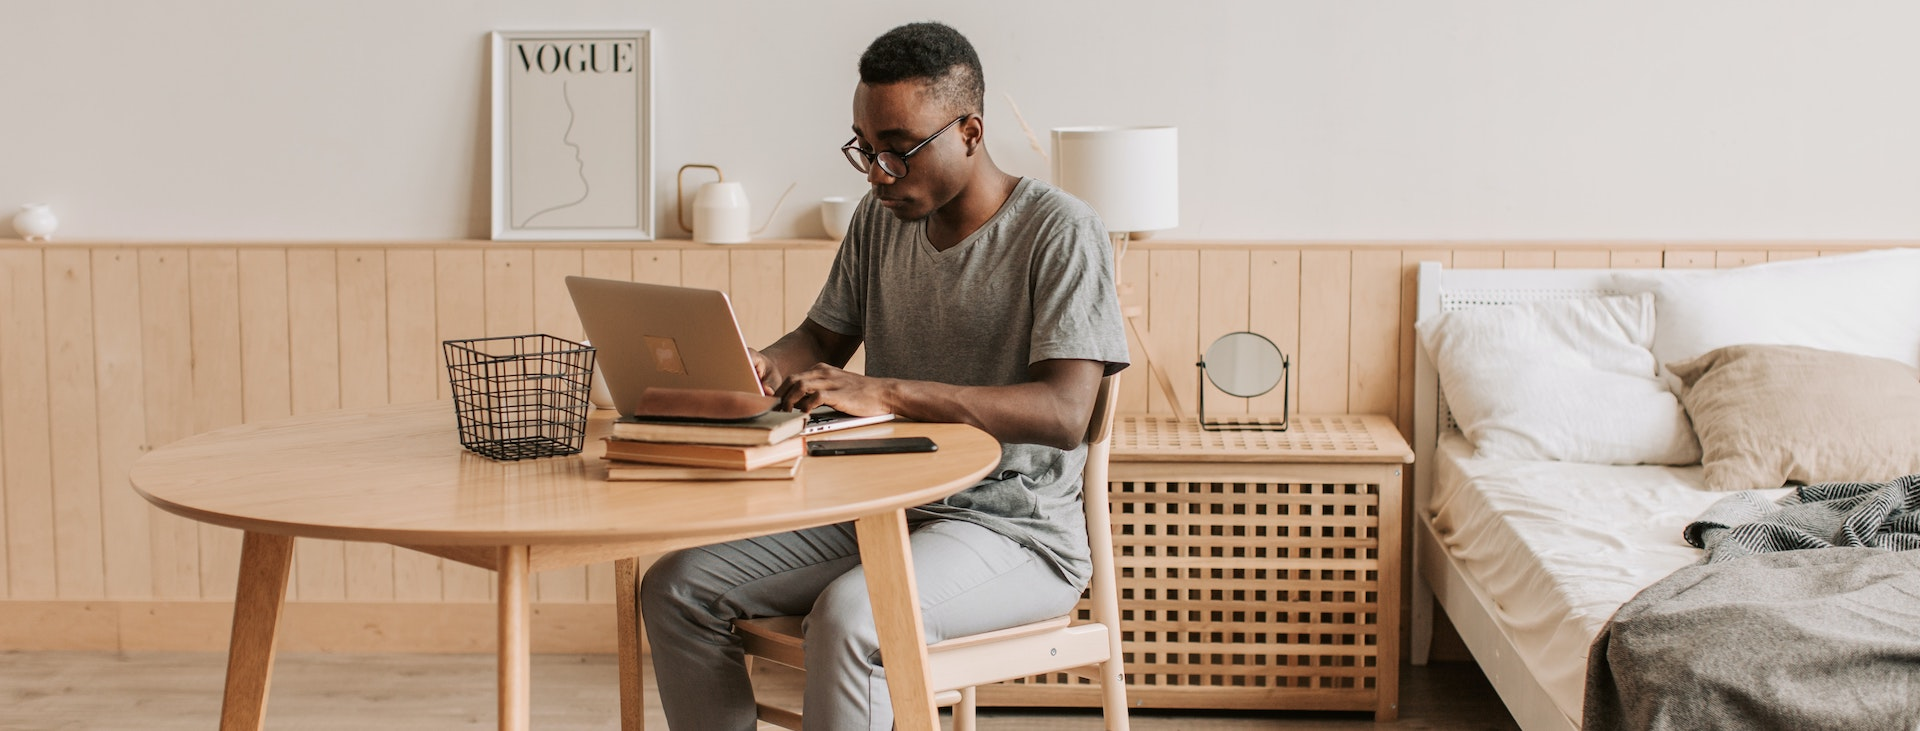 Student studying in bedroom at table